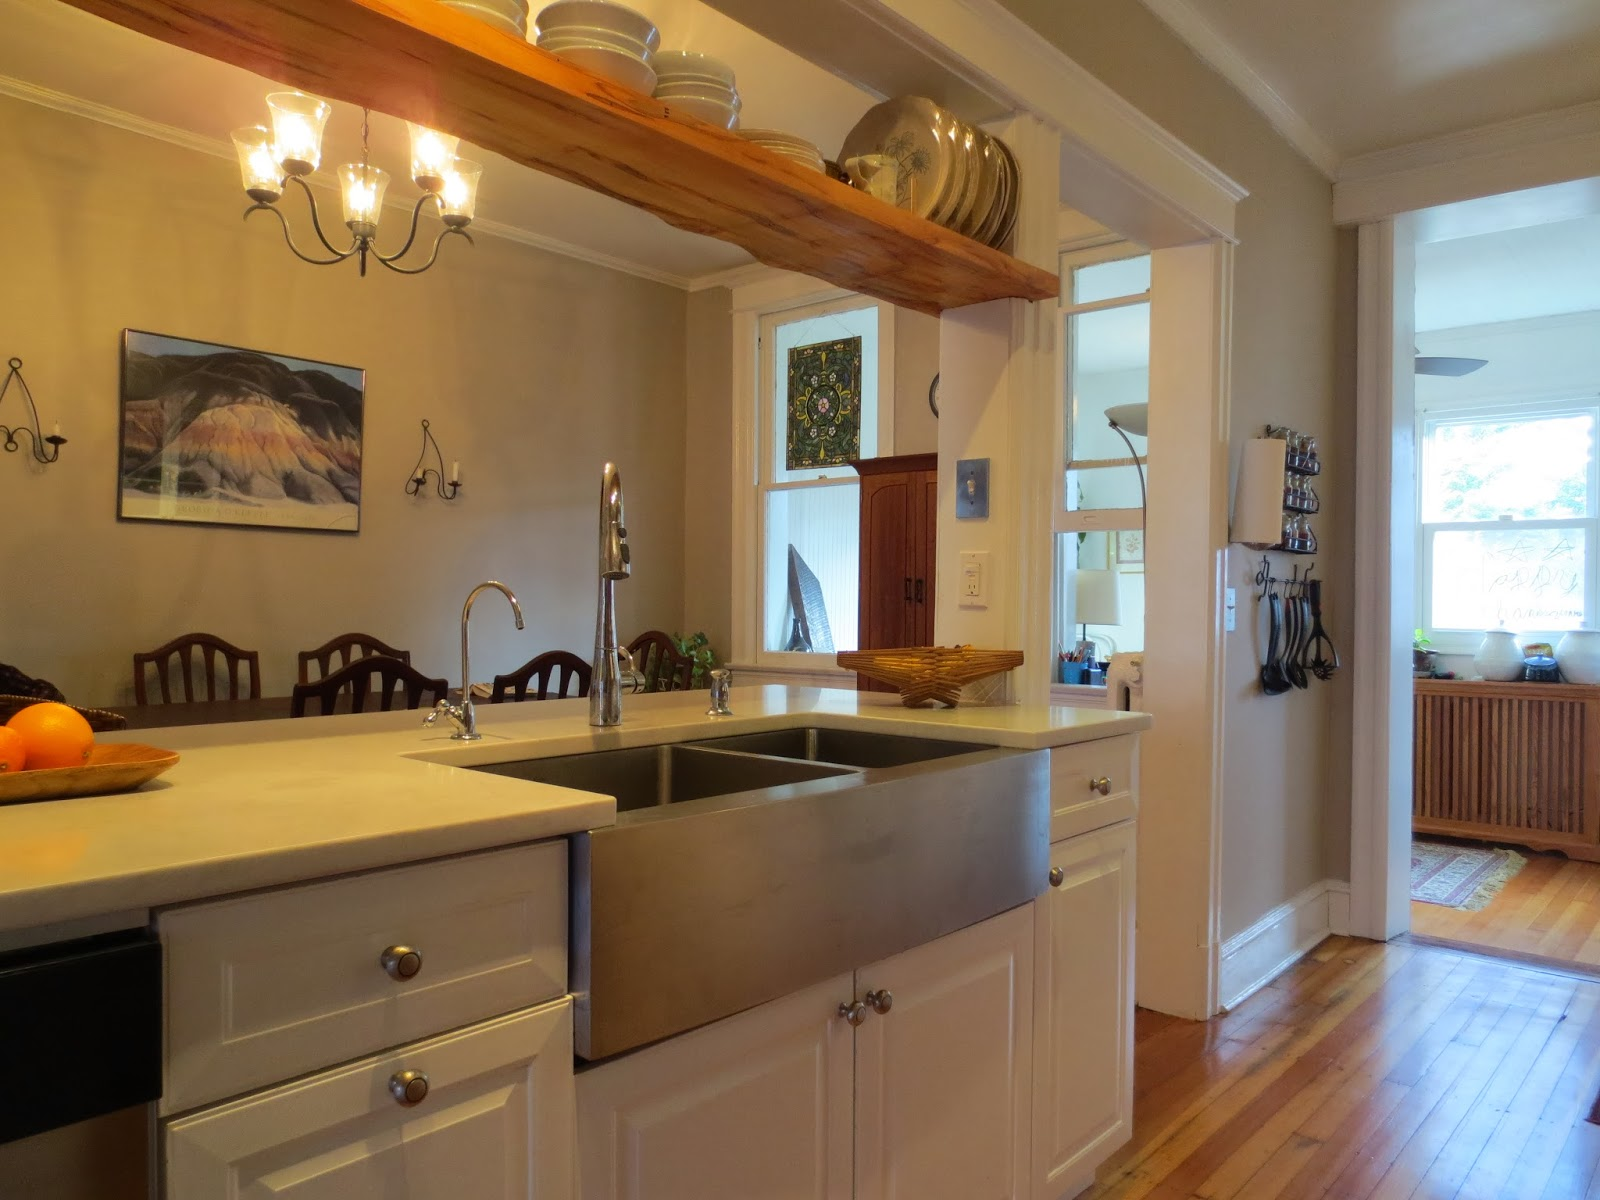 This kitchen is all about easy access  everything within reach. The